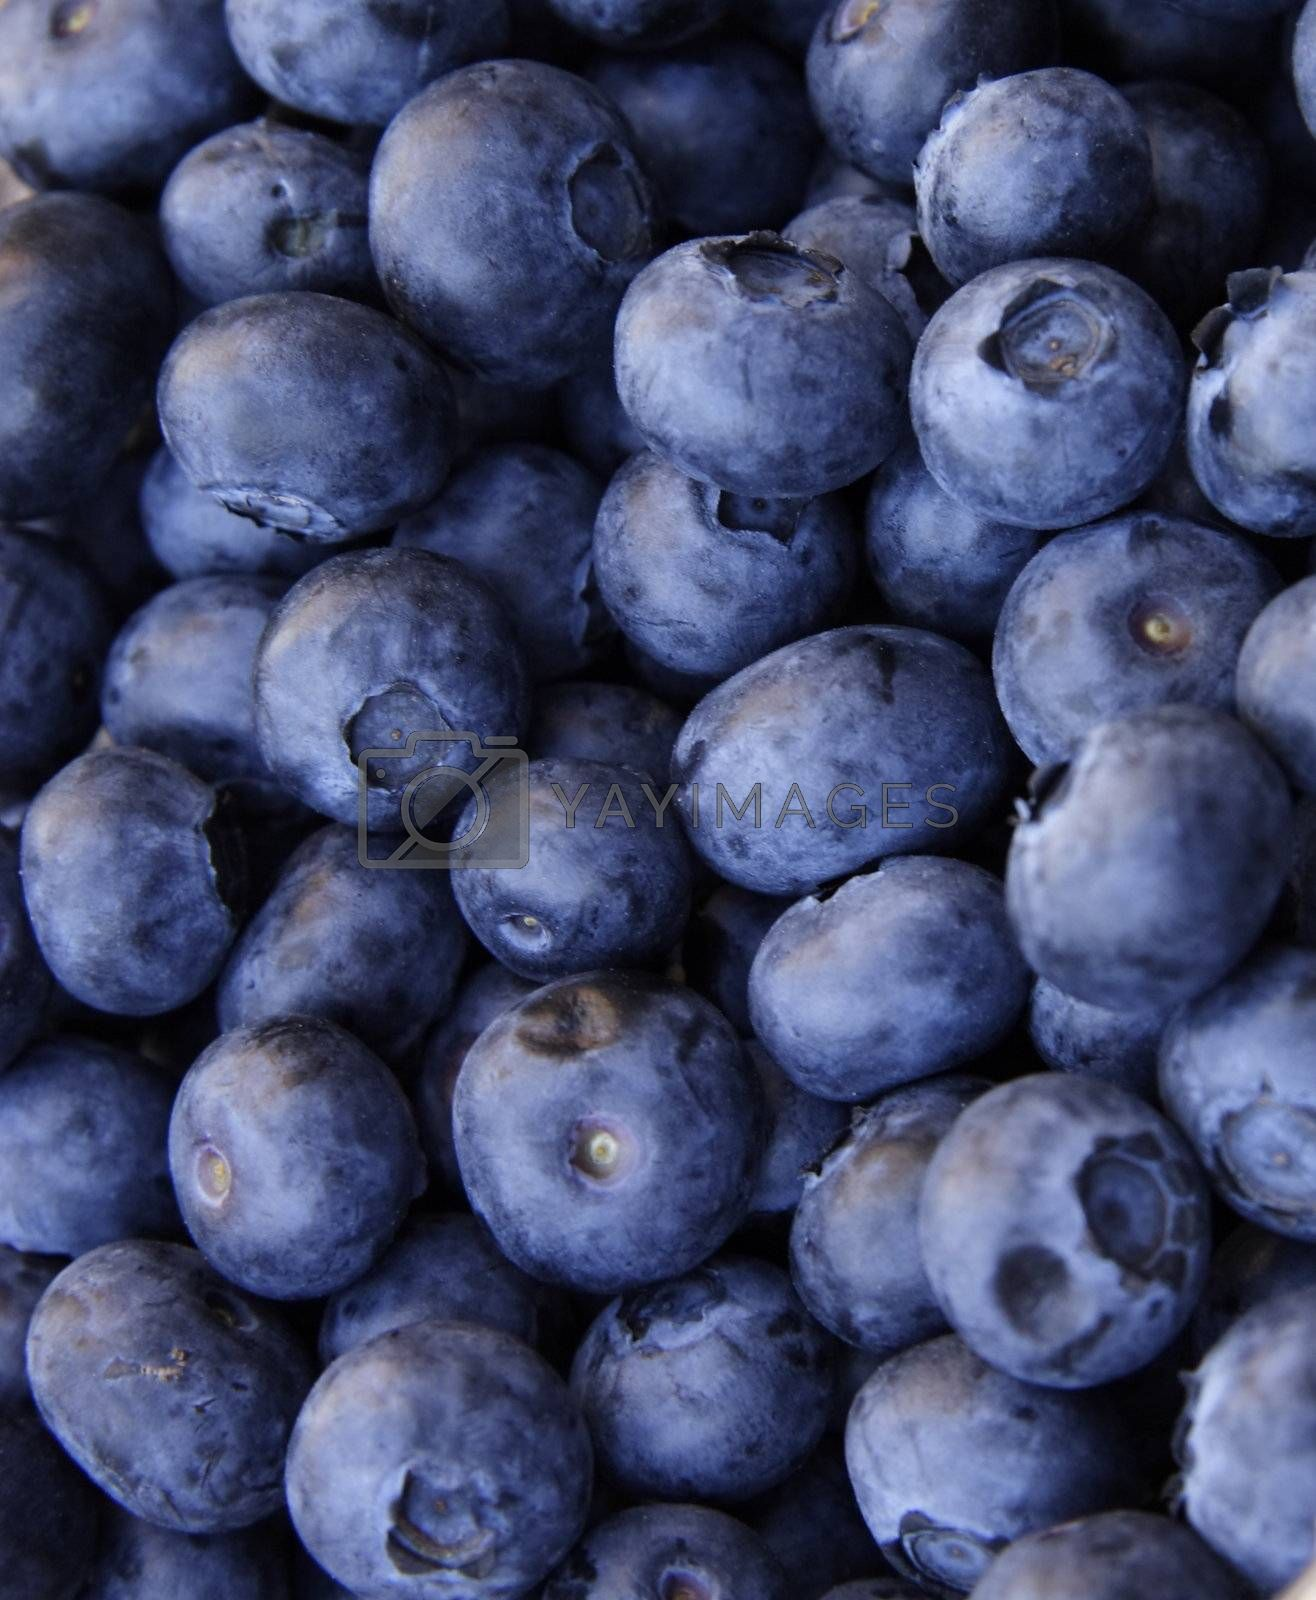 detailed image closeup of blue berry fruits